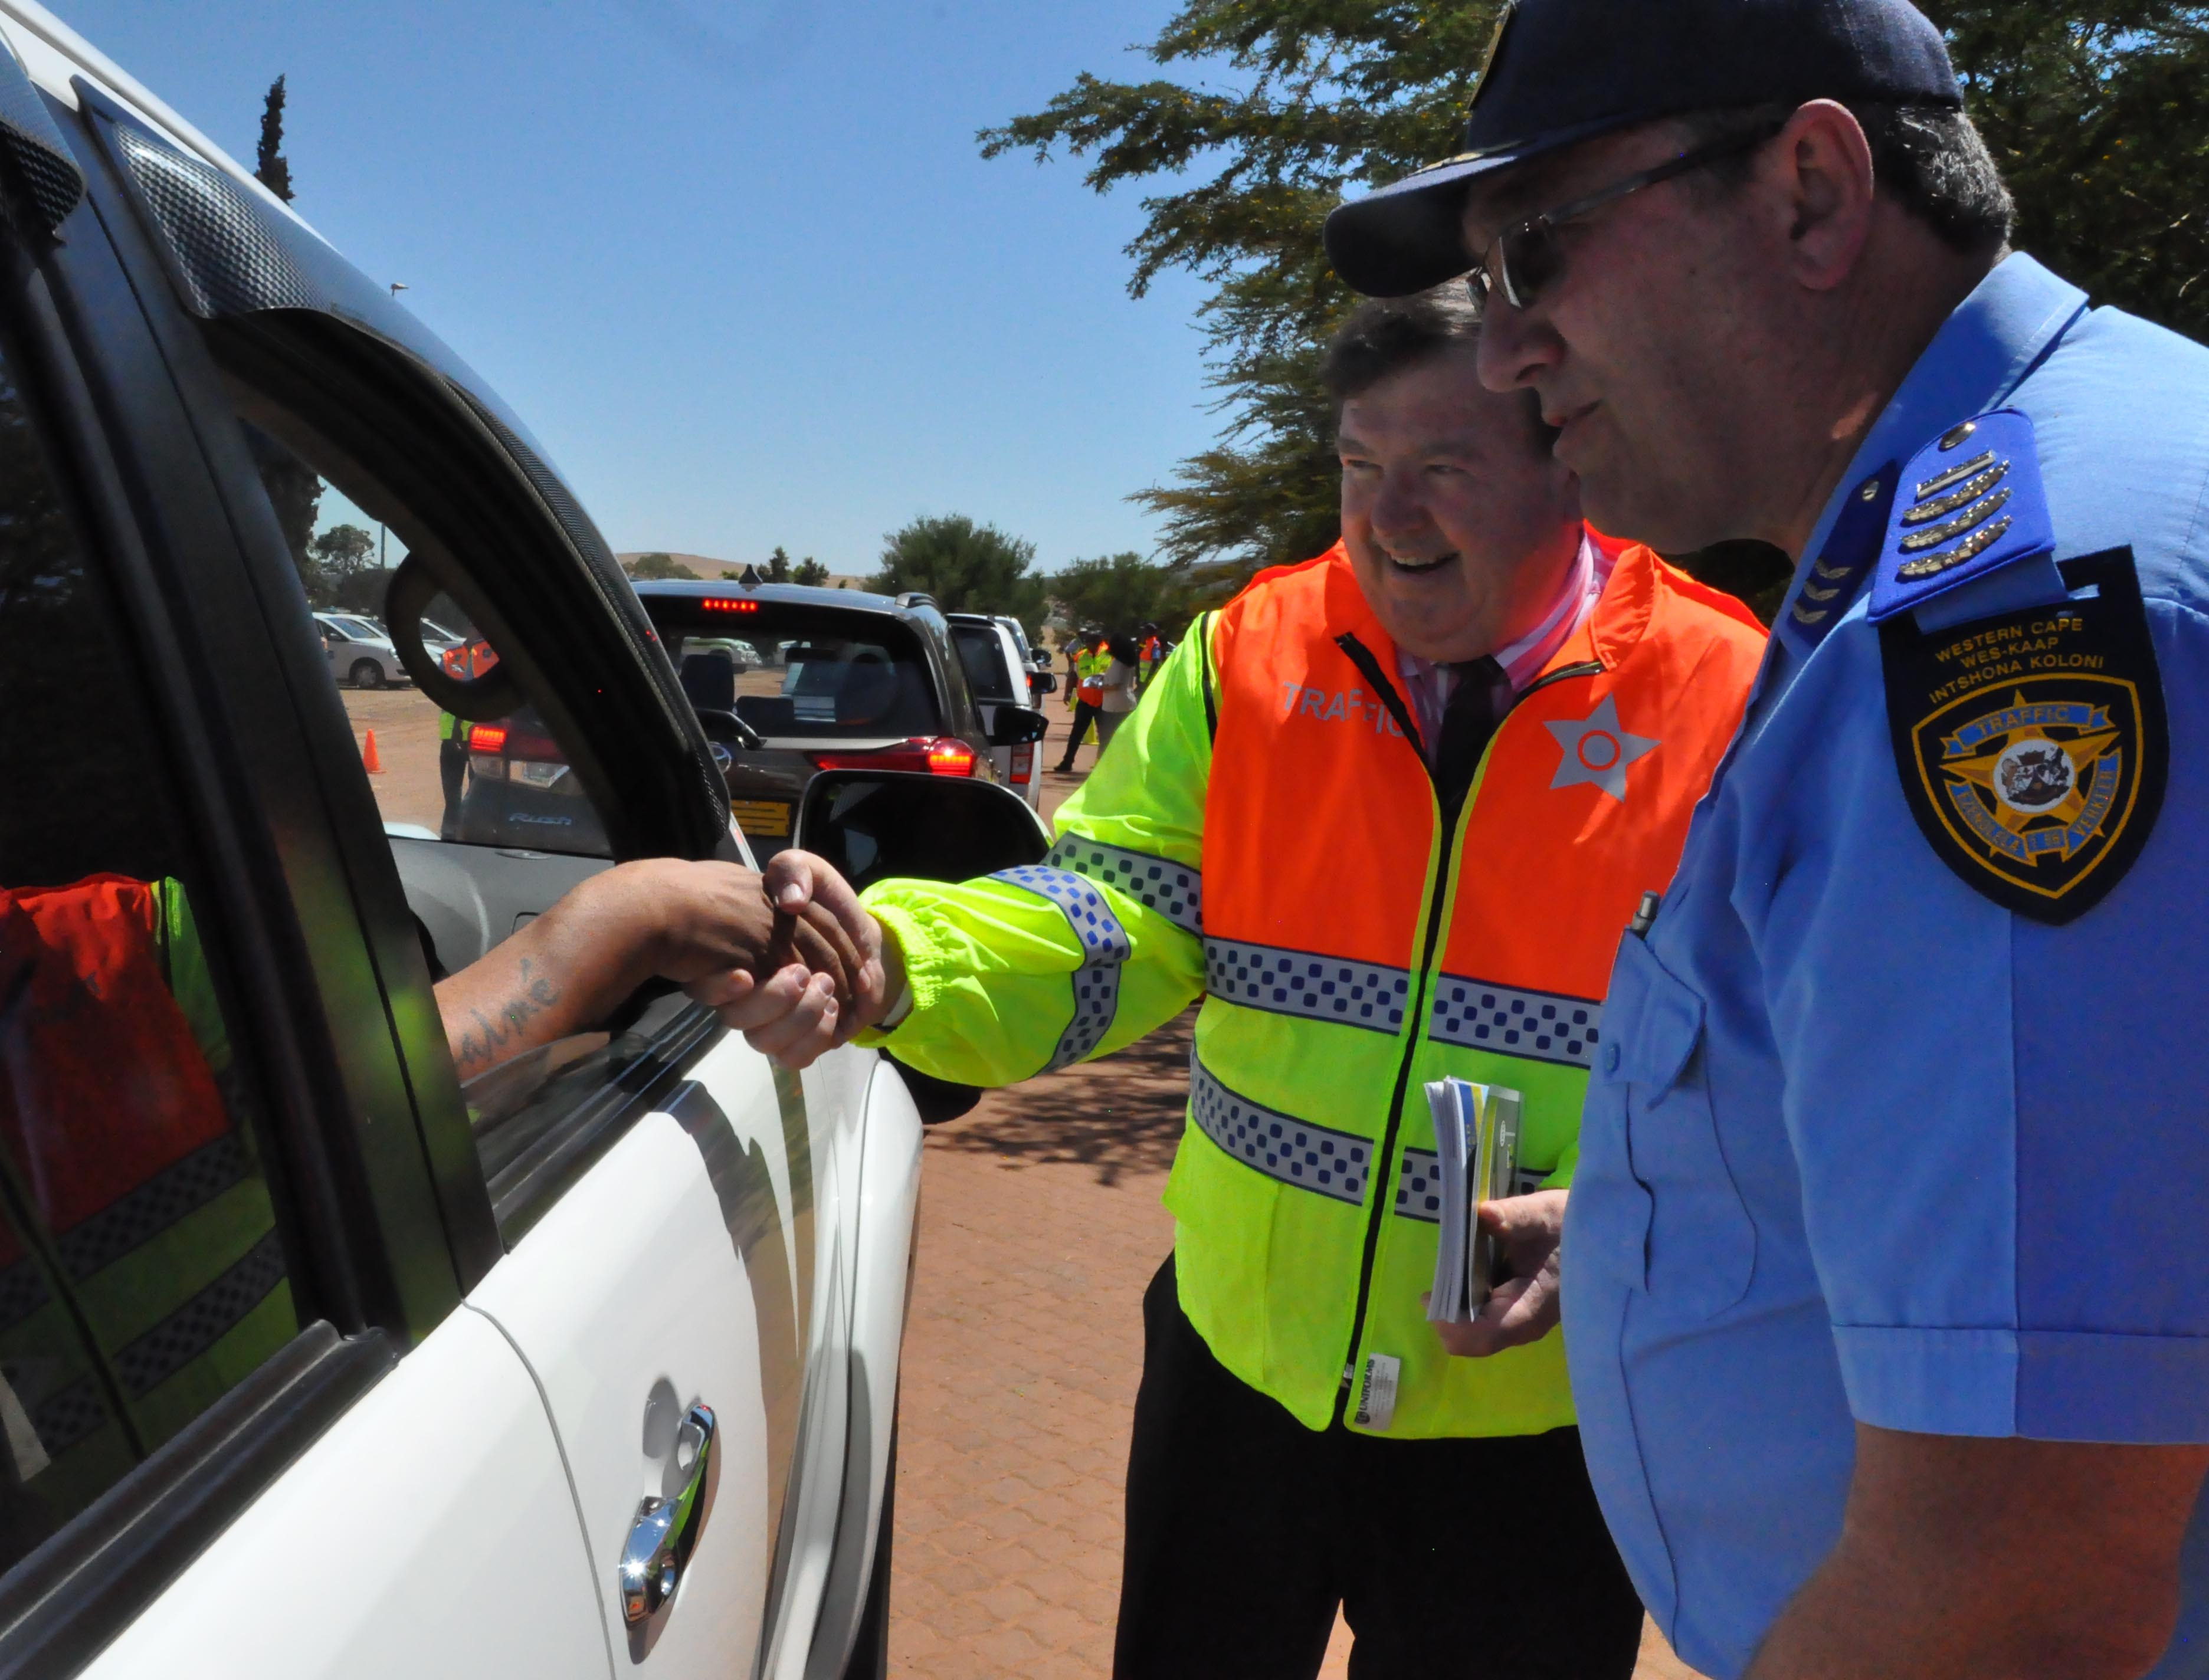 Minister Donald Grant and Vredenburg Traffic Chief Desmond Payton interact with a motorist.